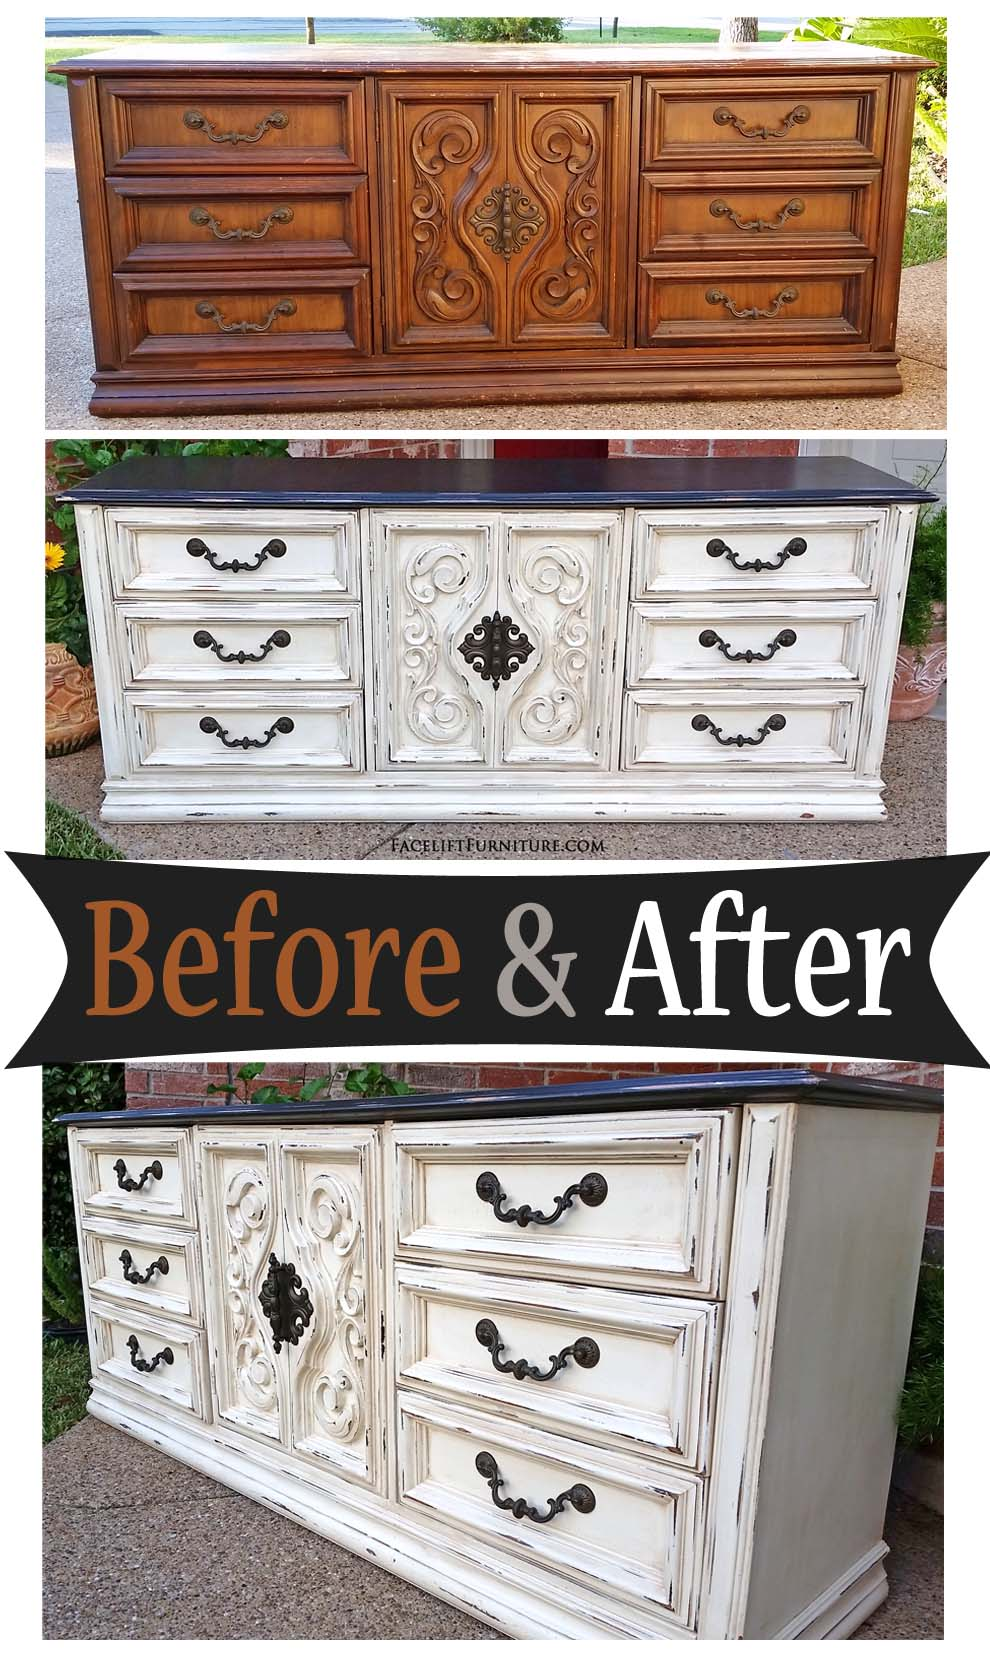 This Big Old Vintage Dresser Was Given A New Life With Paint, Glaze And  Distressing.